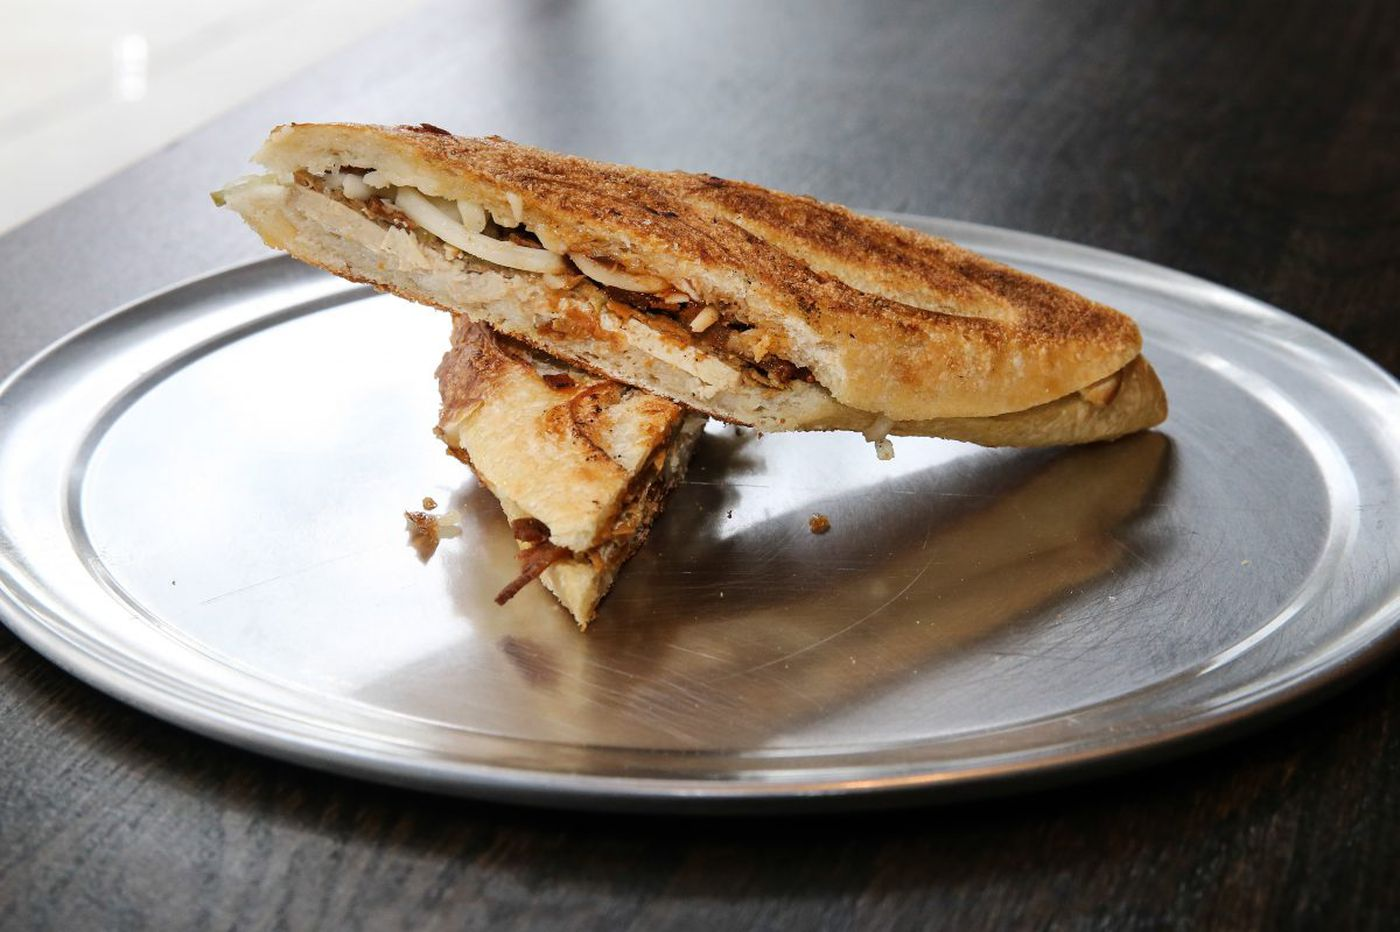 A smoky and salty Cubano, minus the meat